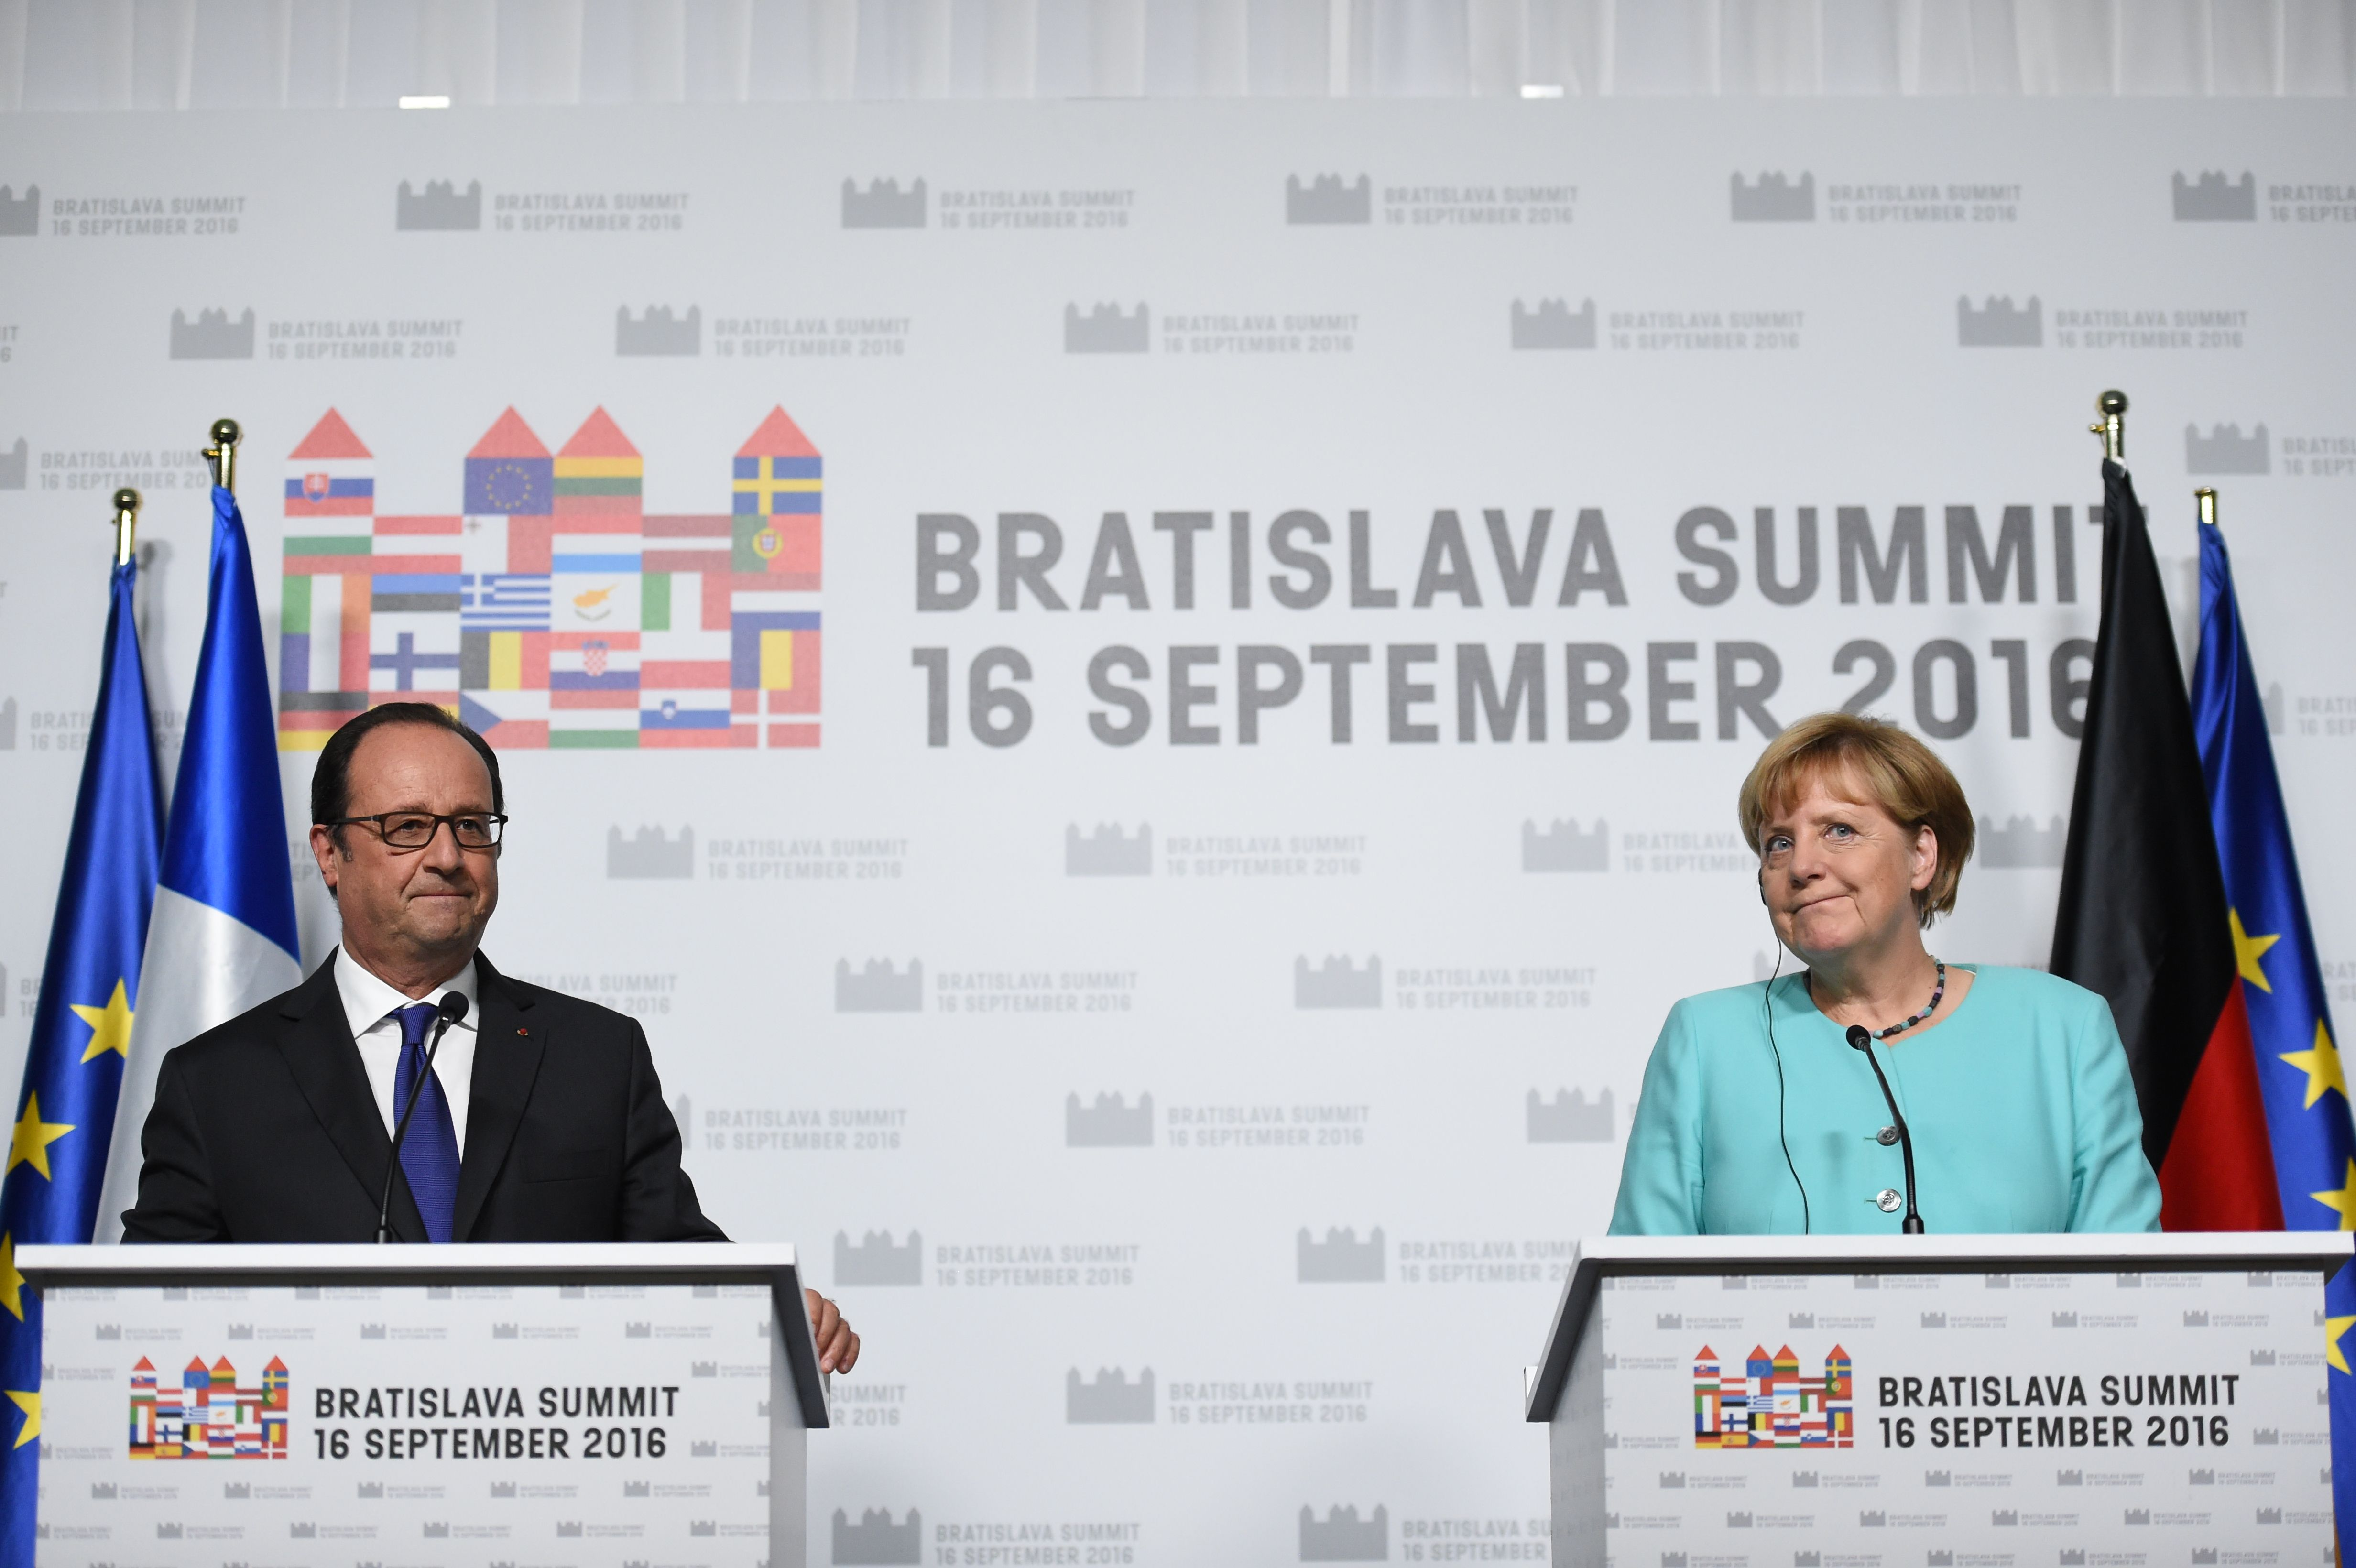 French President Francois Hollande (L) and German Chancellor Angela Merkel deliver a joint statement after the European Union Summit of 27 Heads of State or Government in Bratislava, Slovakia, on Sept. 16, 2016. (Stephane de Sakutin/AFP/Getty Images)